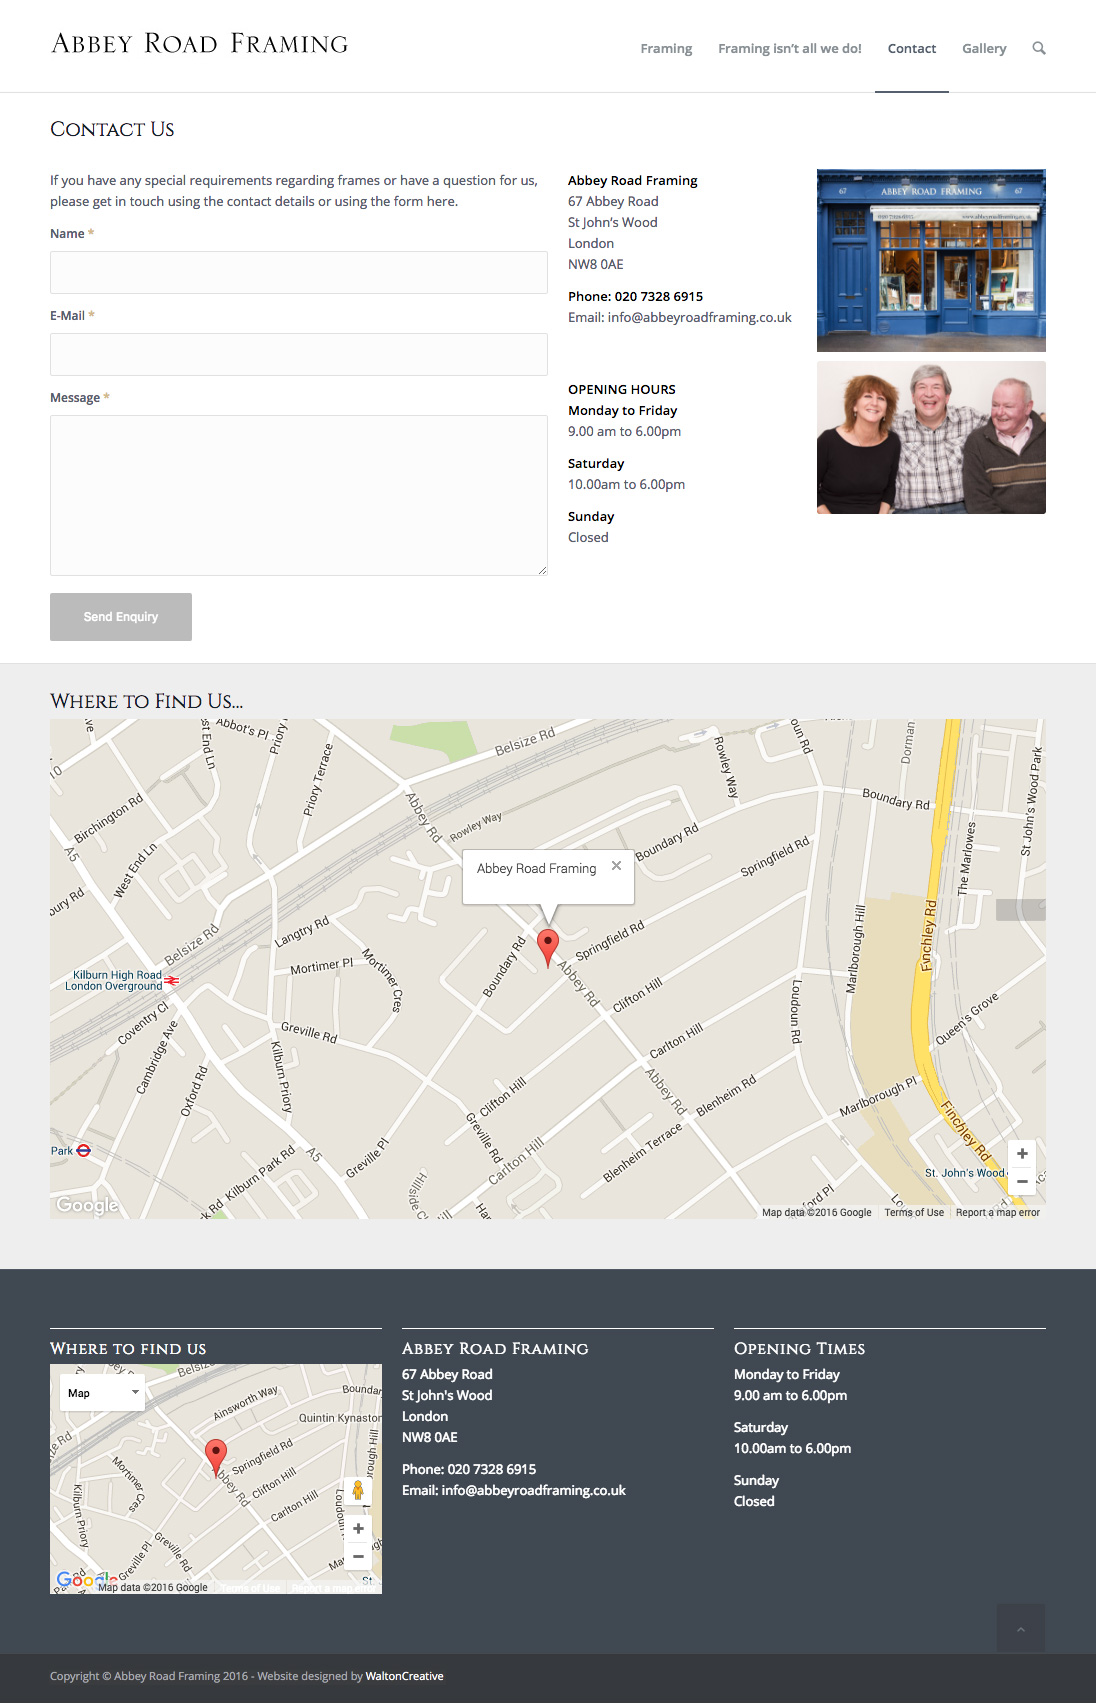 Abbey Road Framing Contact Page